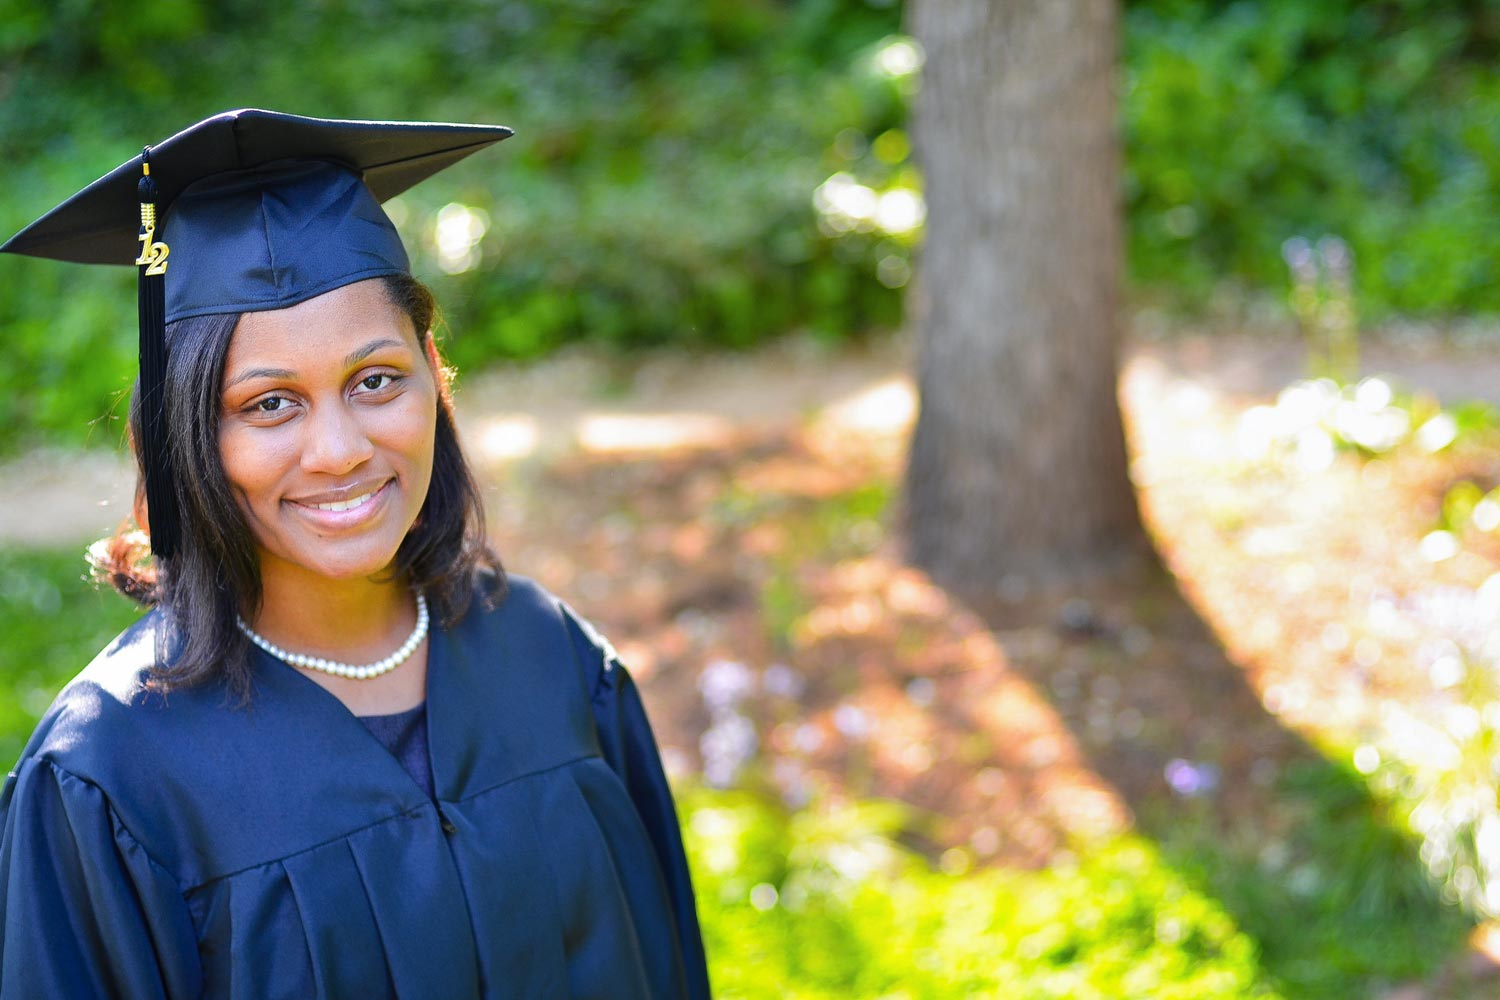 2012 Alumna Tamara Wilkerson (now Dias) was an African American Teaching Fellow in her graduate year in the Curry School's master's in teaching program.